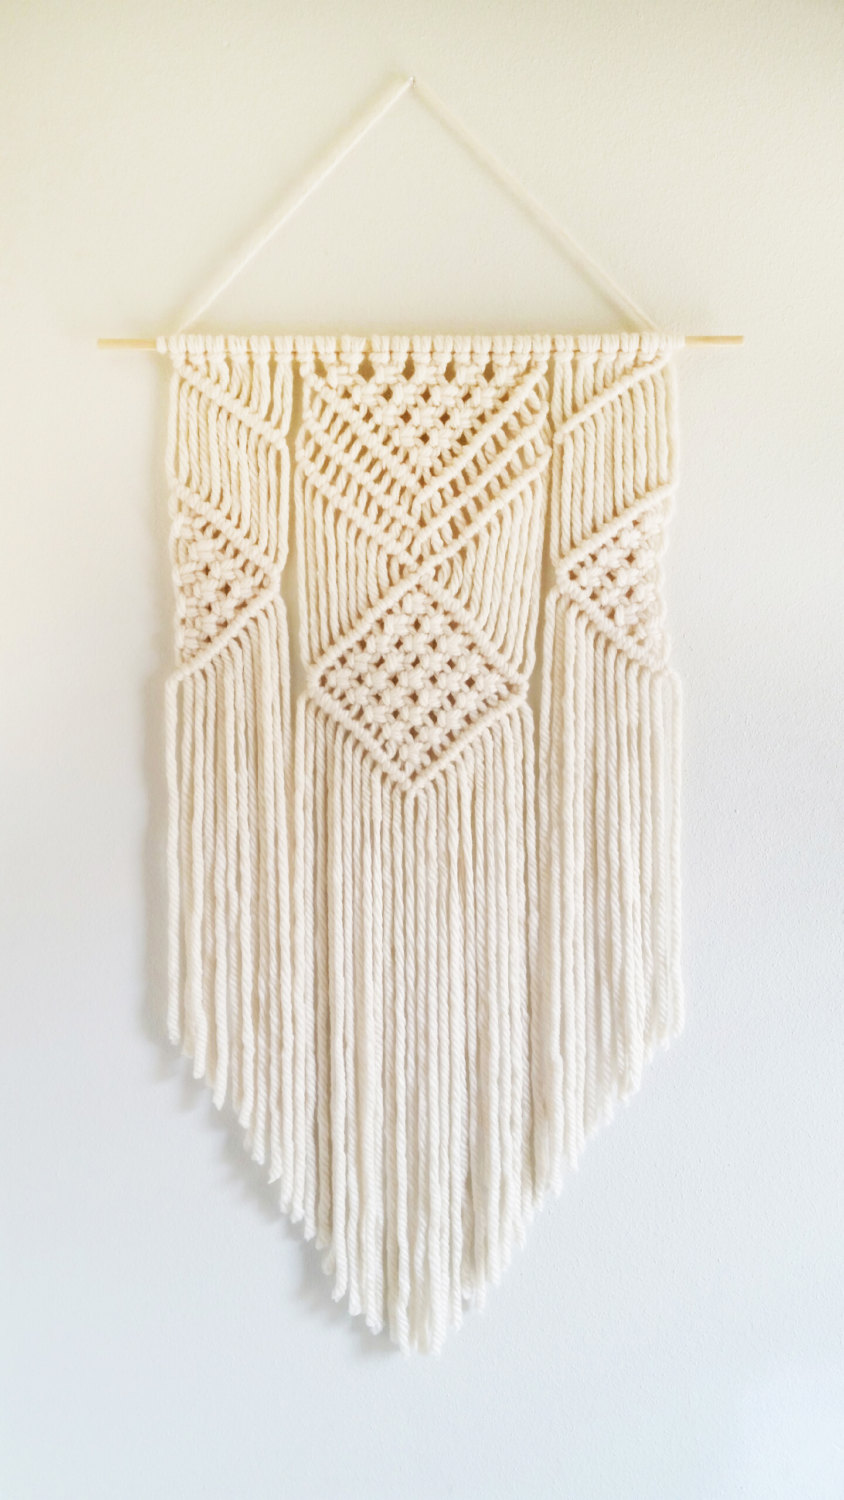 Textured Wall Hangings Are Weaving Their Way Into